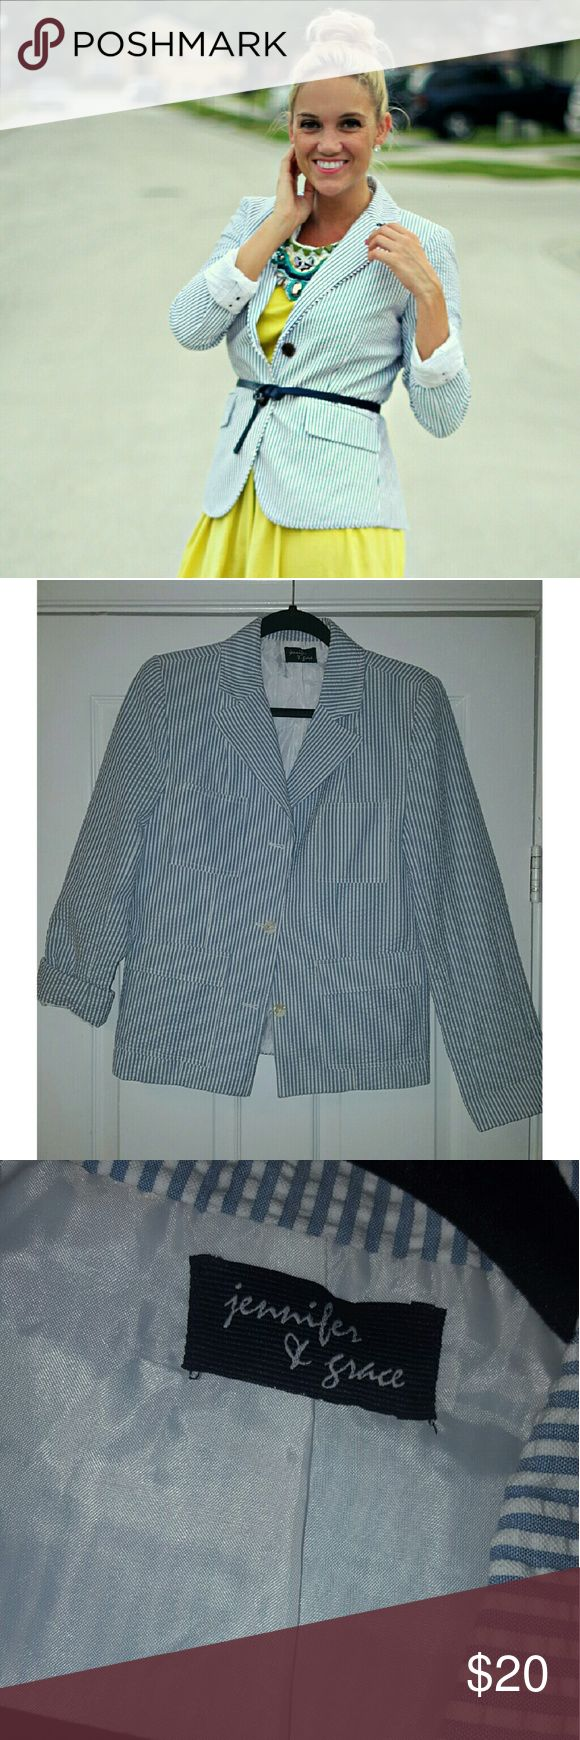 Jennifer & Grace seersucker blazer OPEN TO OFFERS ❤❤  Shoulder pads removed, no flaws other than that Jackets & Coats Blazers